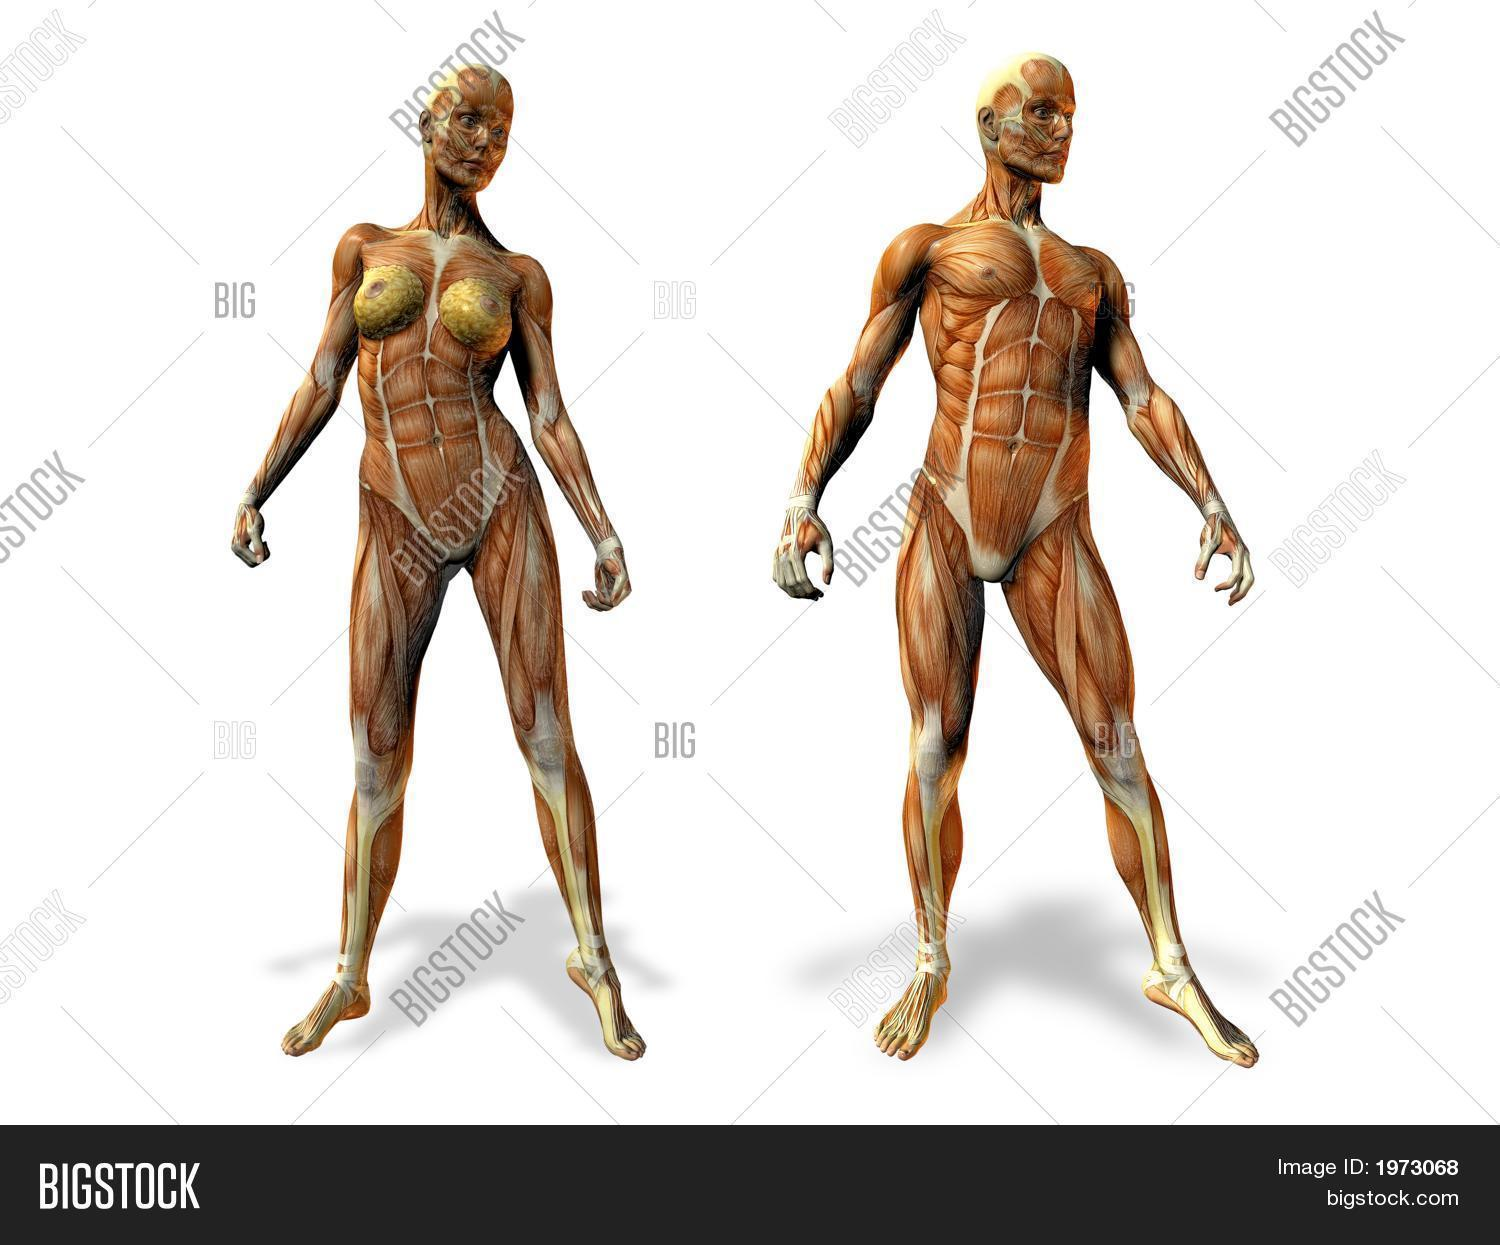 Femalemale Anatomy Image Photo Free Trial Bigstock